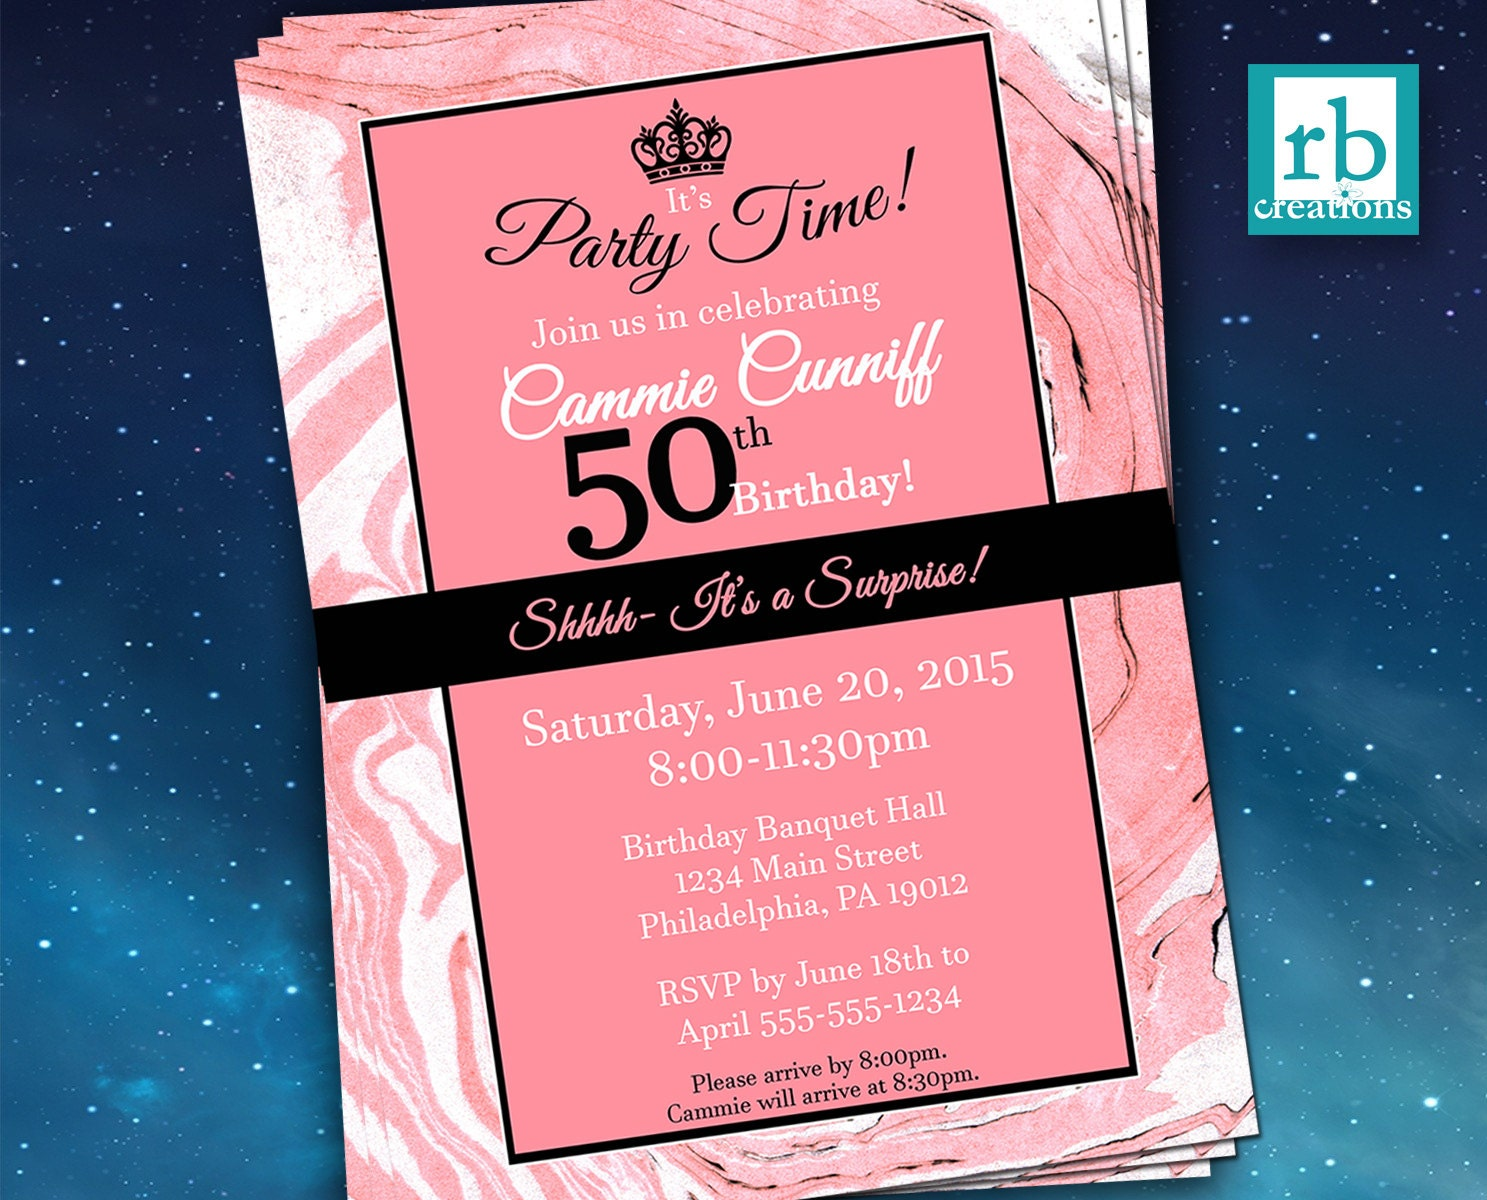 Surprise Party Invitations, Surprise Birthday Invitation, Surprise ...